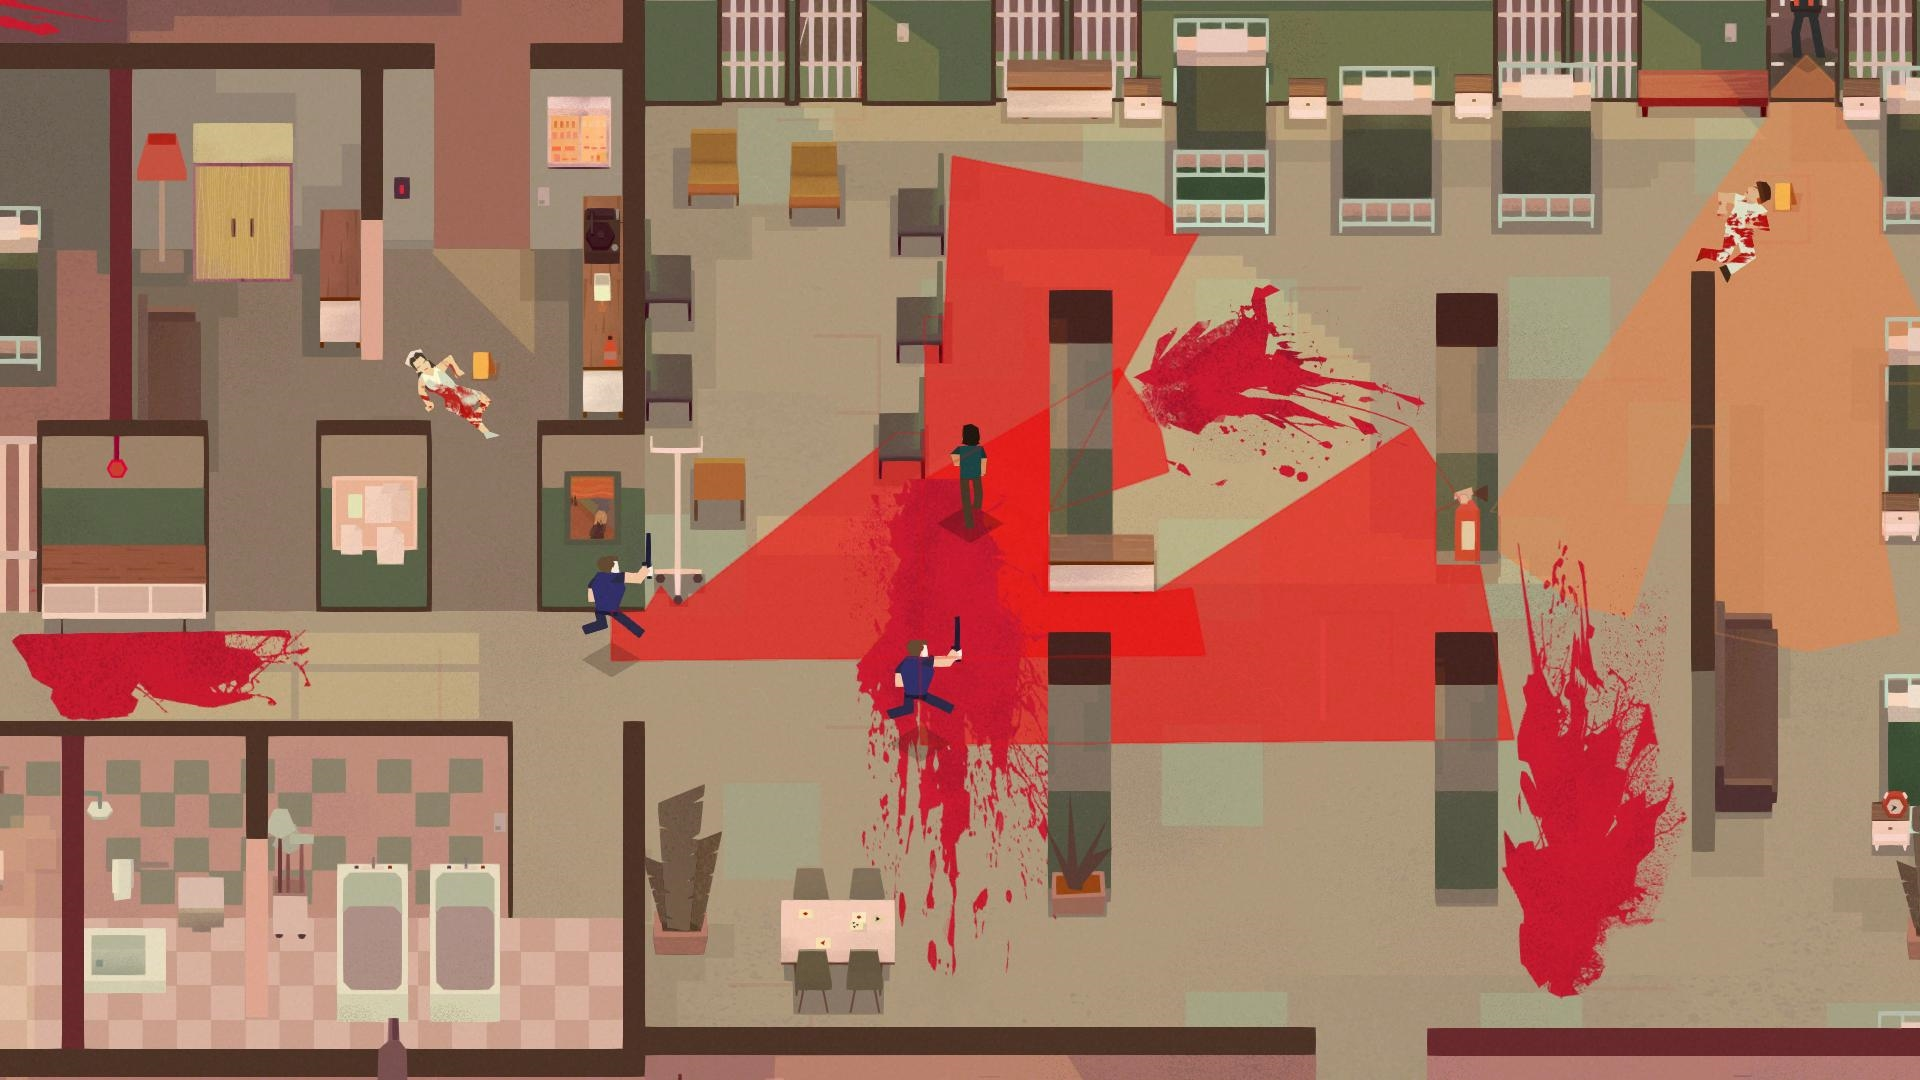 Serial Cleaner (PS4) - imagine having to clean up after Hotline Miami